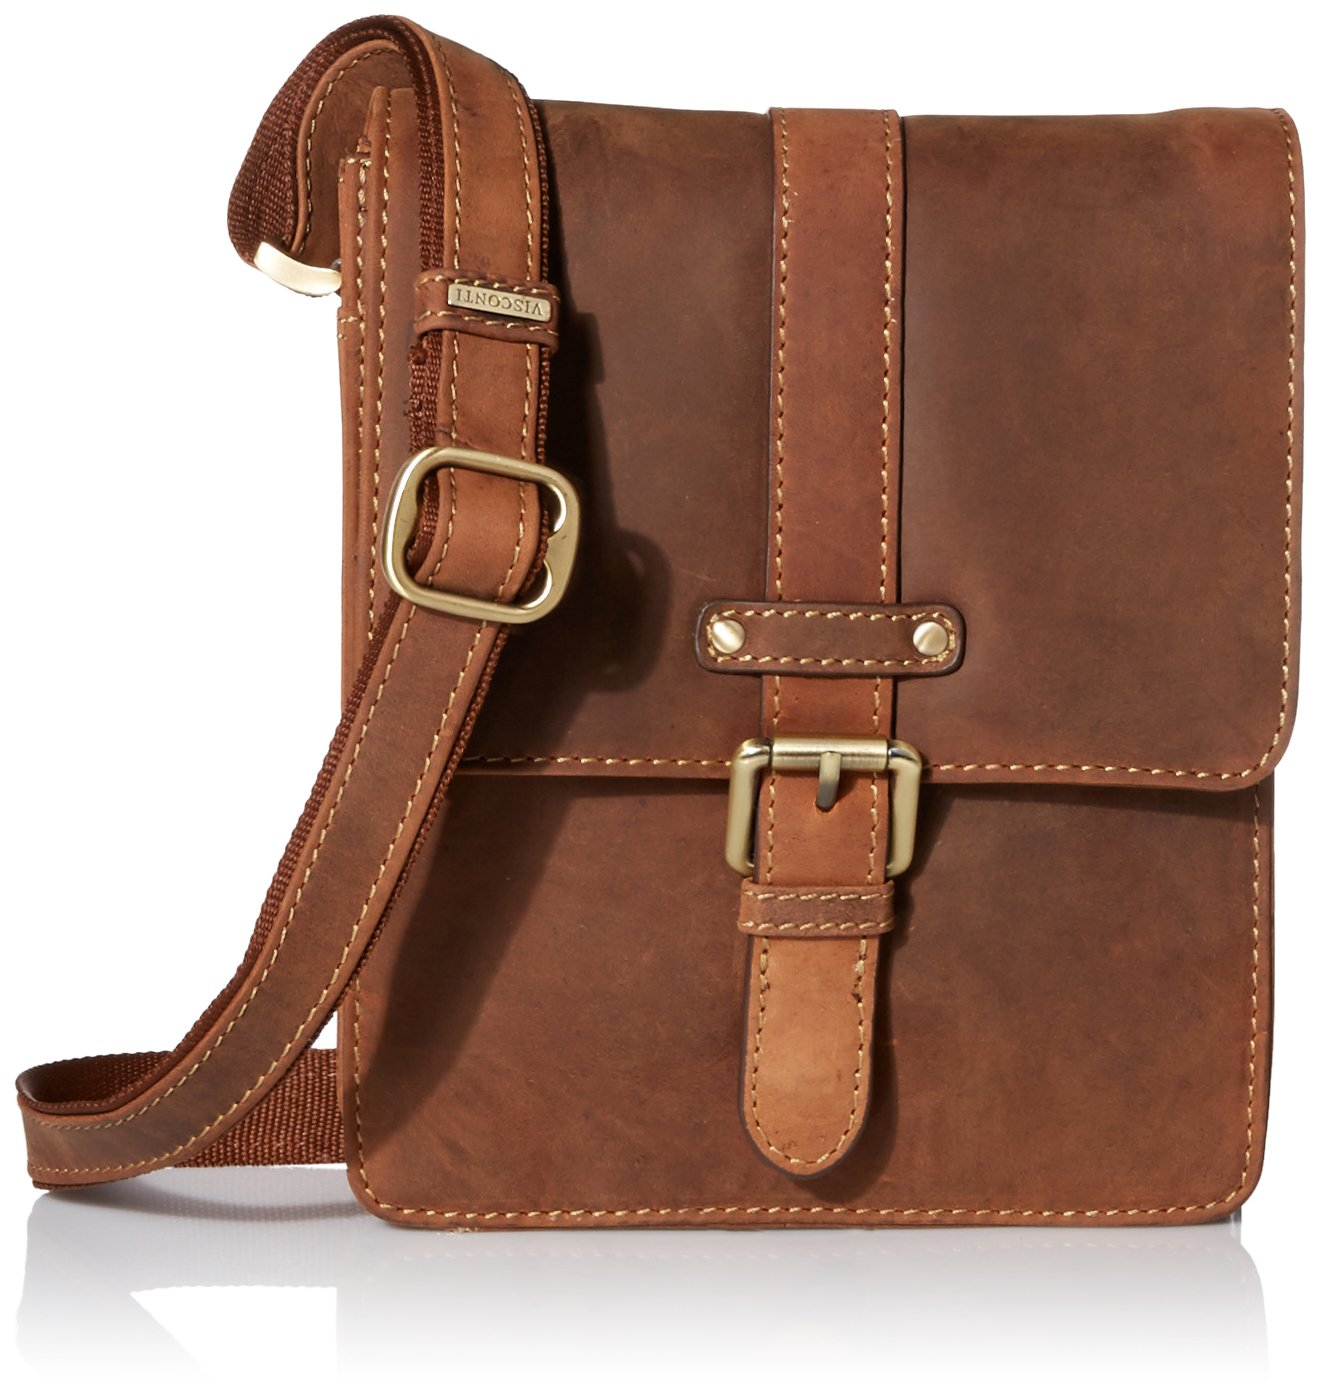 Visconti Modern Style Messenger Bag Made Of Oiled Distressed Leather, Tan, One Size Visconti Luggage 16113